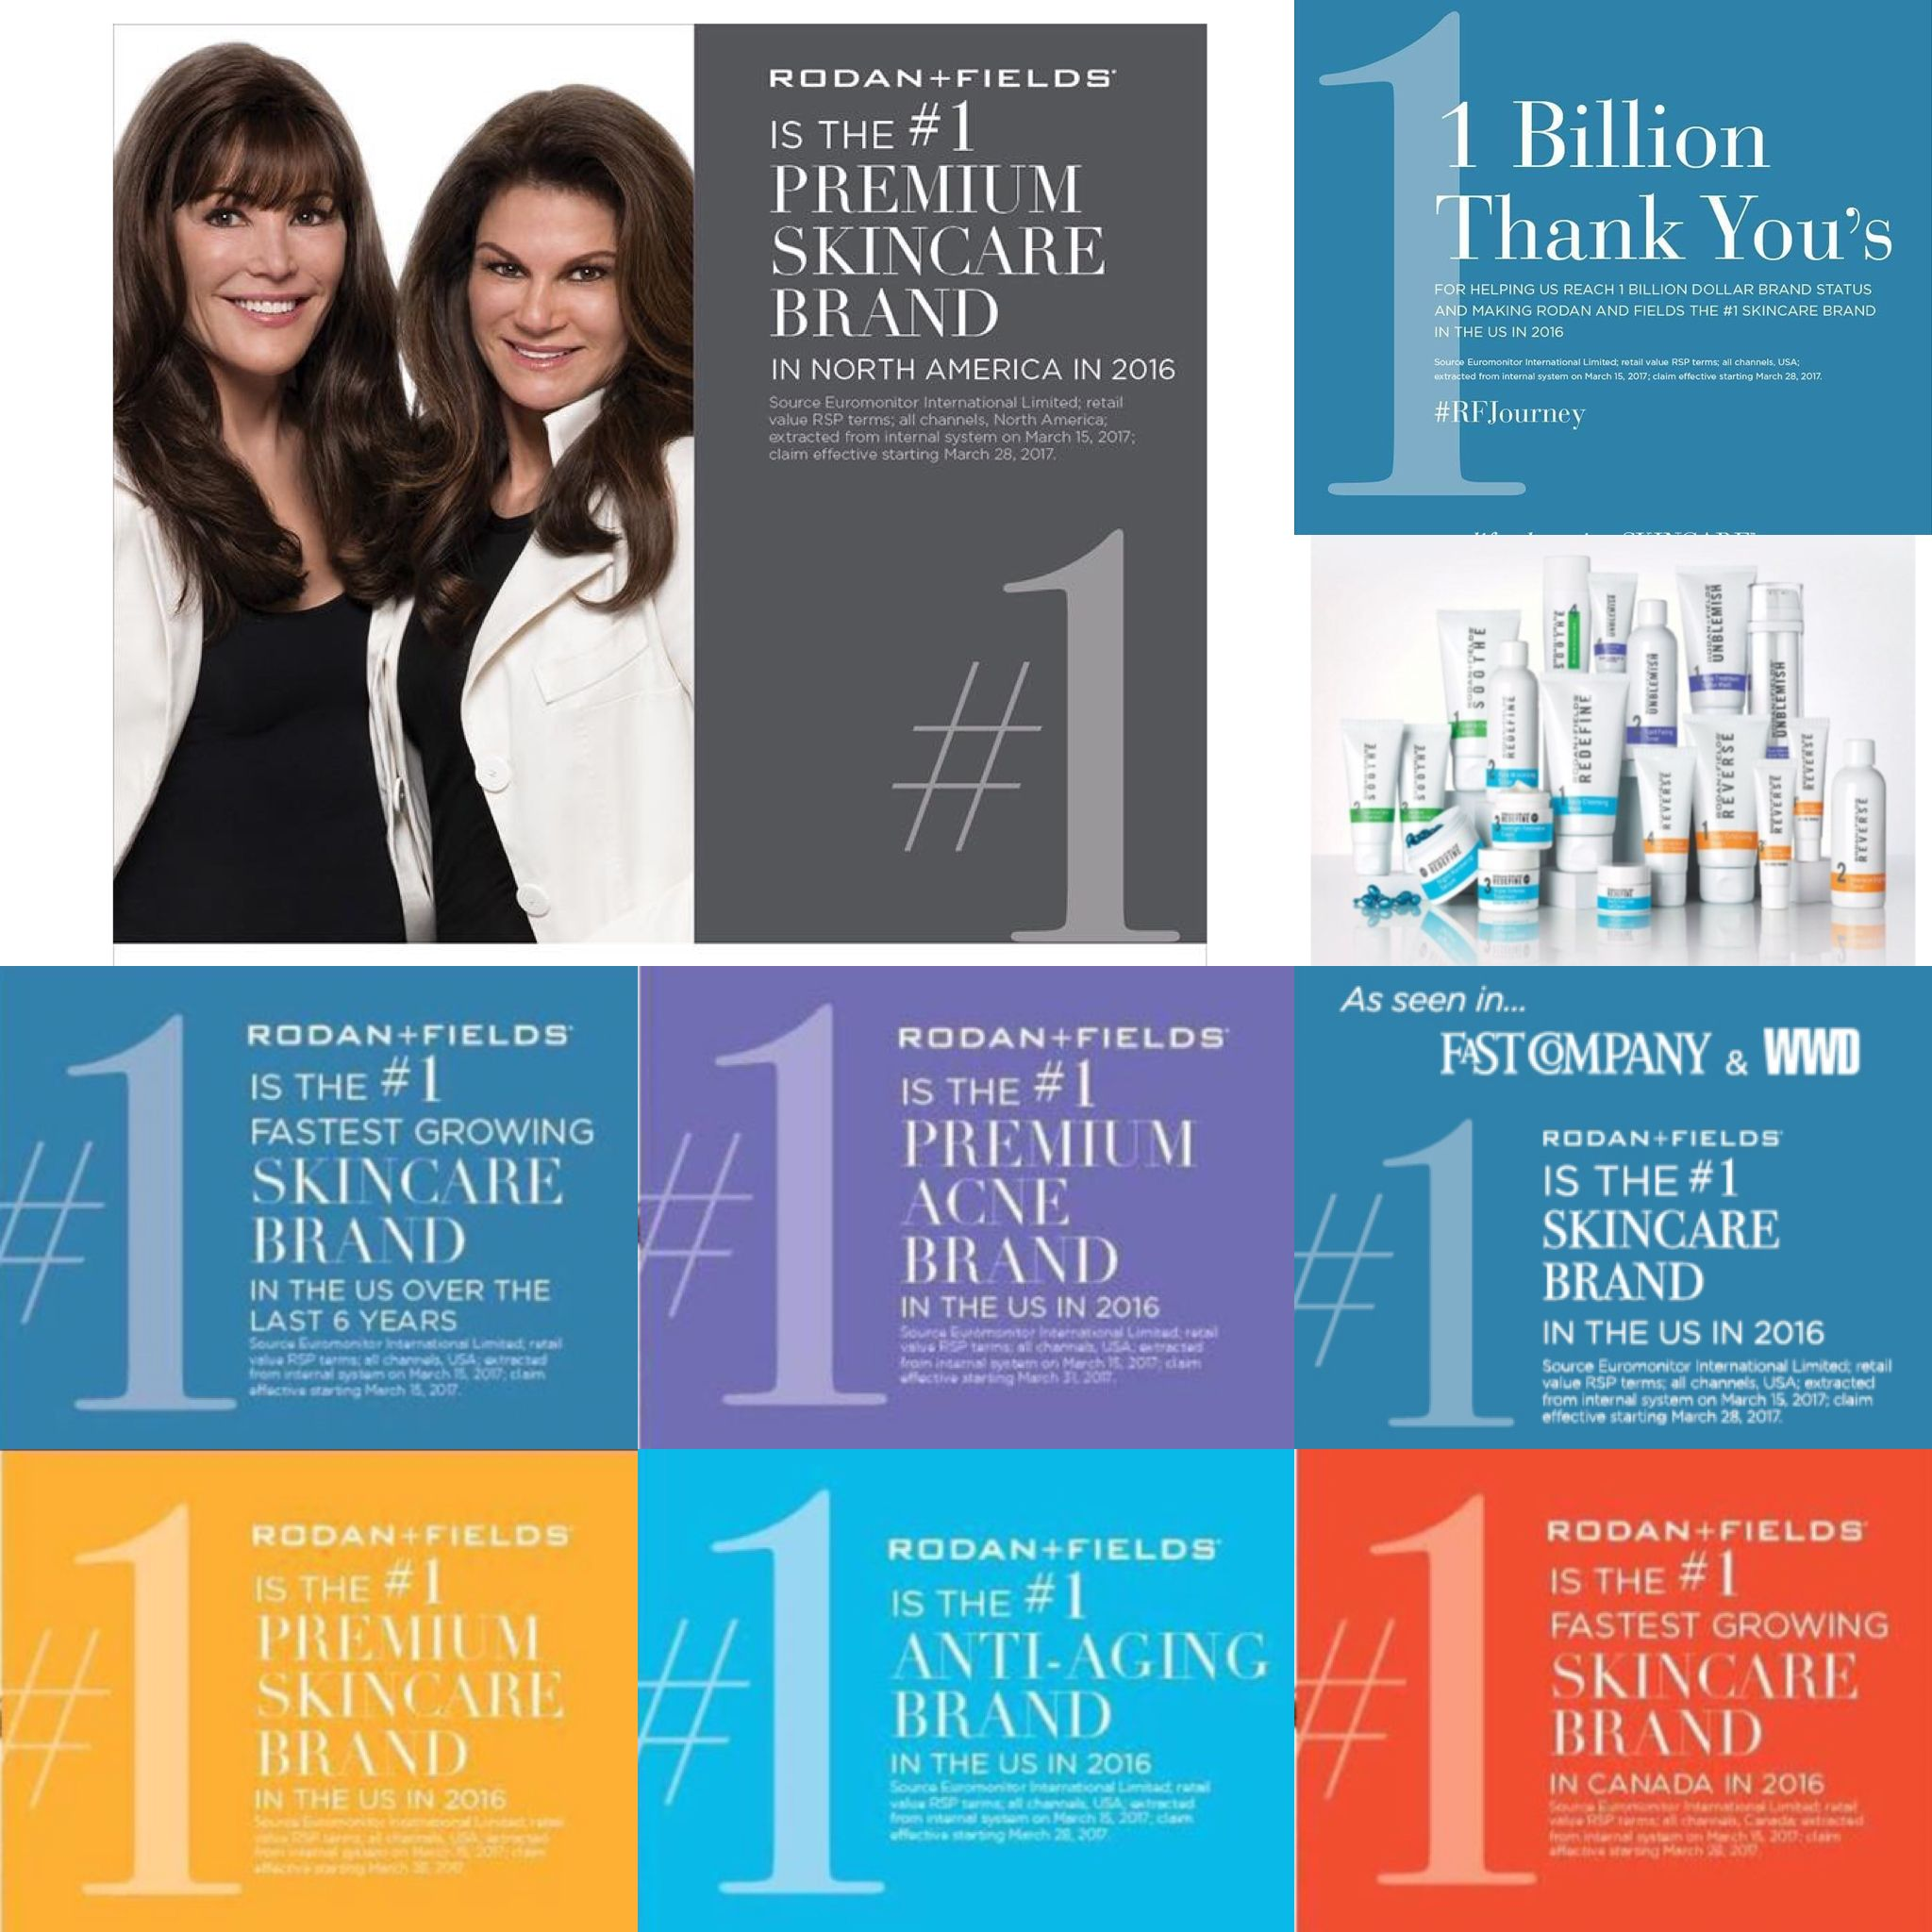 This Under The Radar Company Was Just Named The No 1 Skin Care Brand In North America Rodan And Fields Skin Care Acne Brand